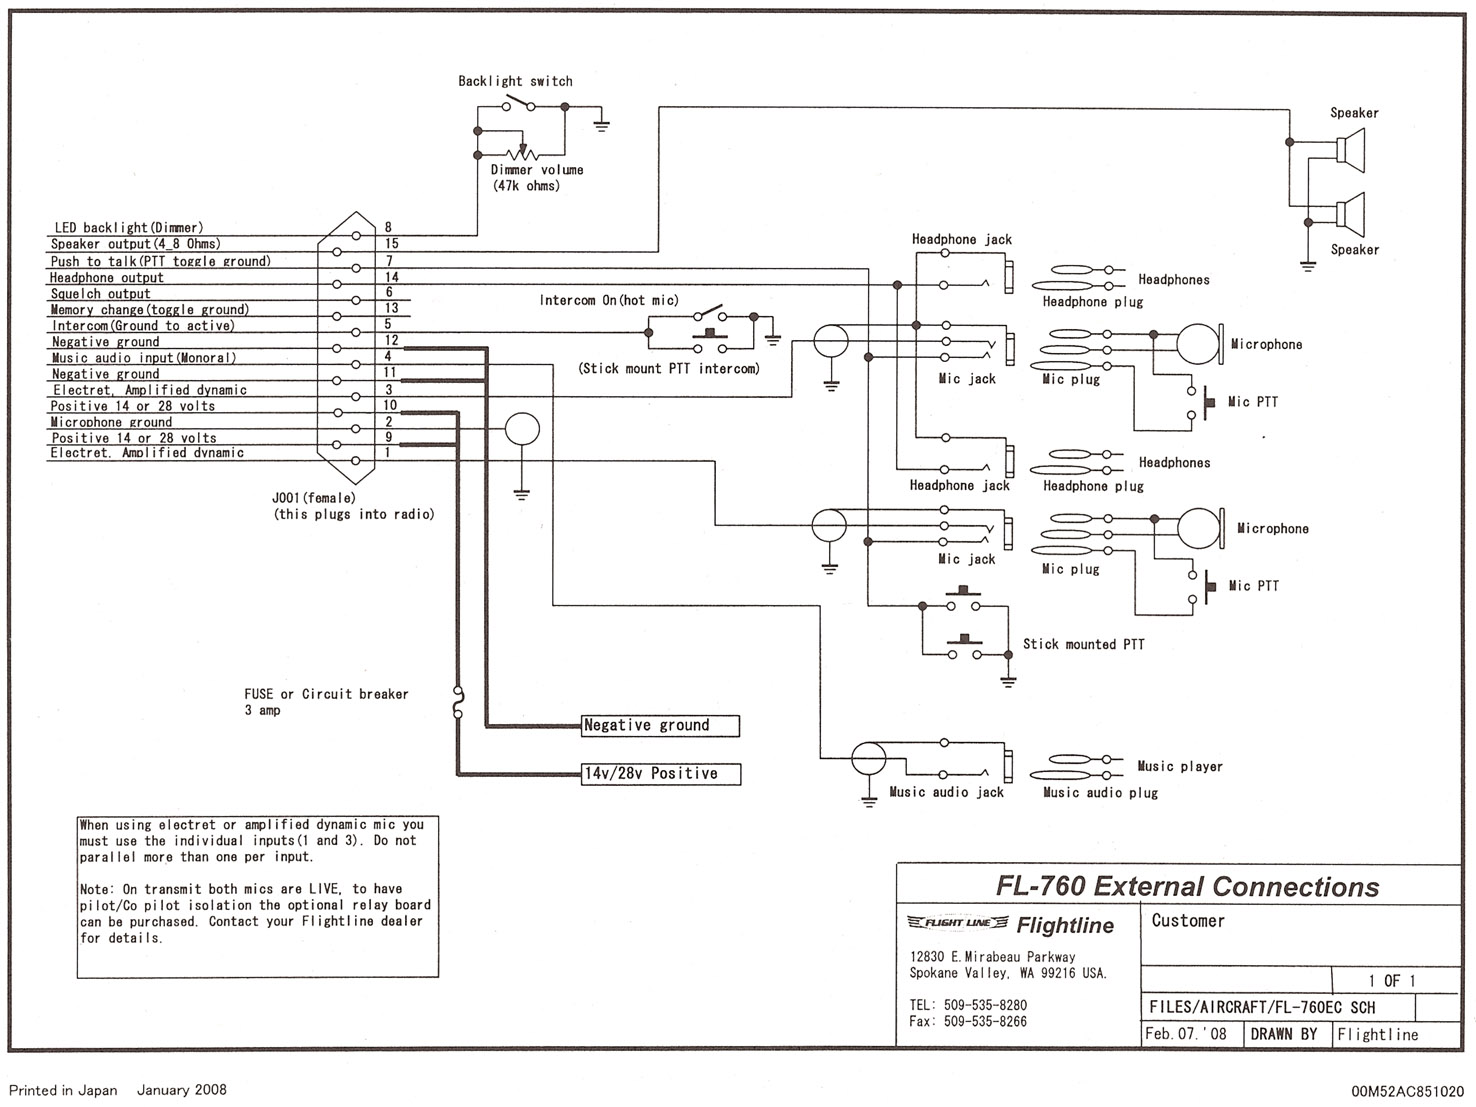 fl_760_wiring_diagram_934?resize\\\=665%2C499 narco com 11a wiring diagram narco 810 pinout \u2022 indy500 co narco 810 wiring diagram at alyssarenee.co